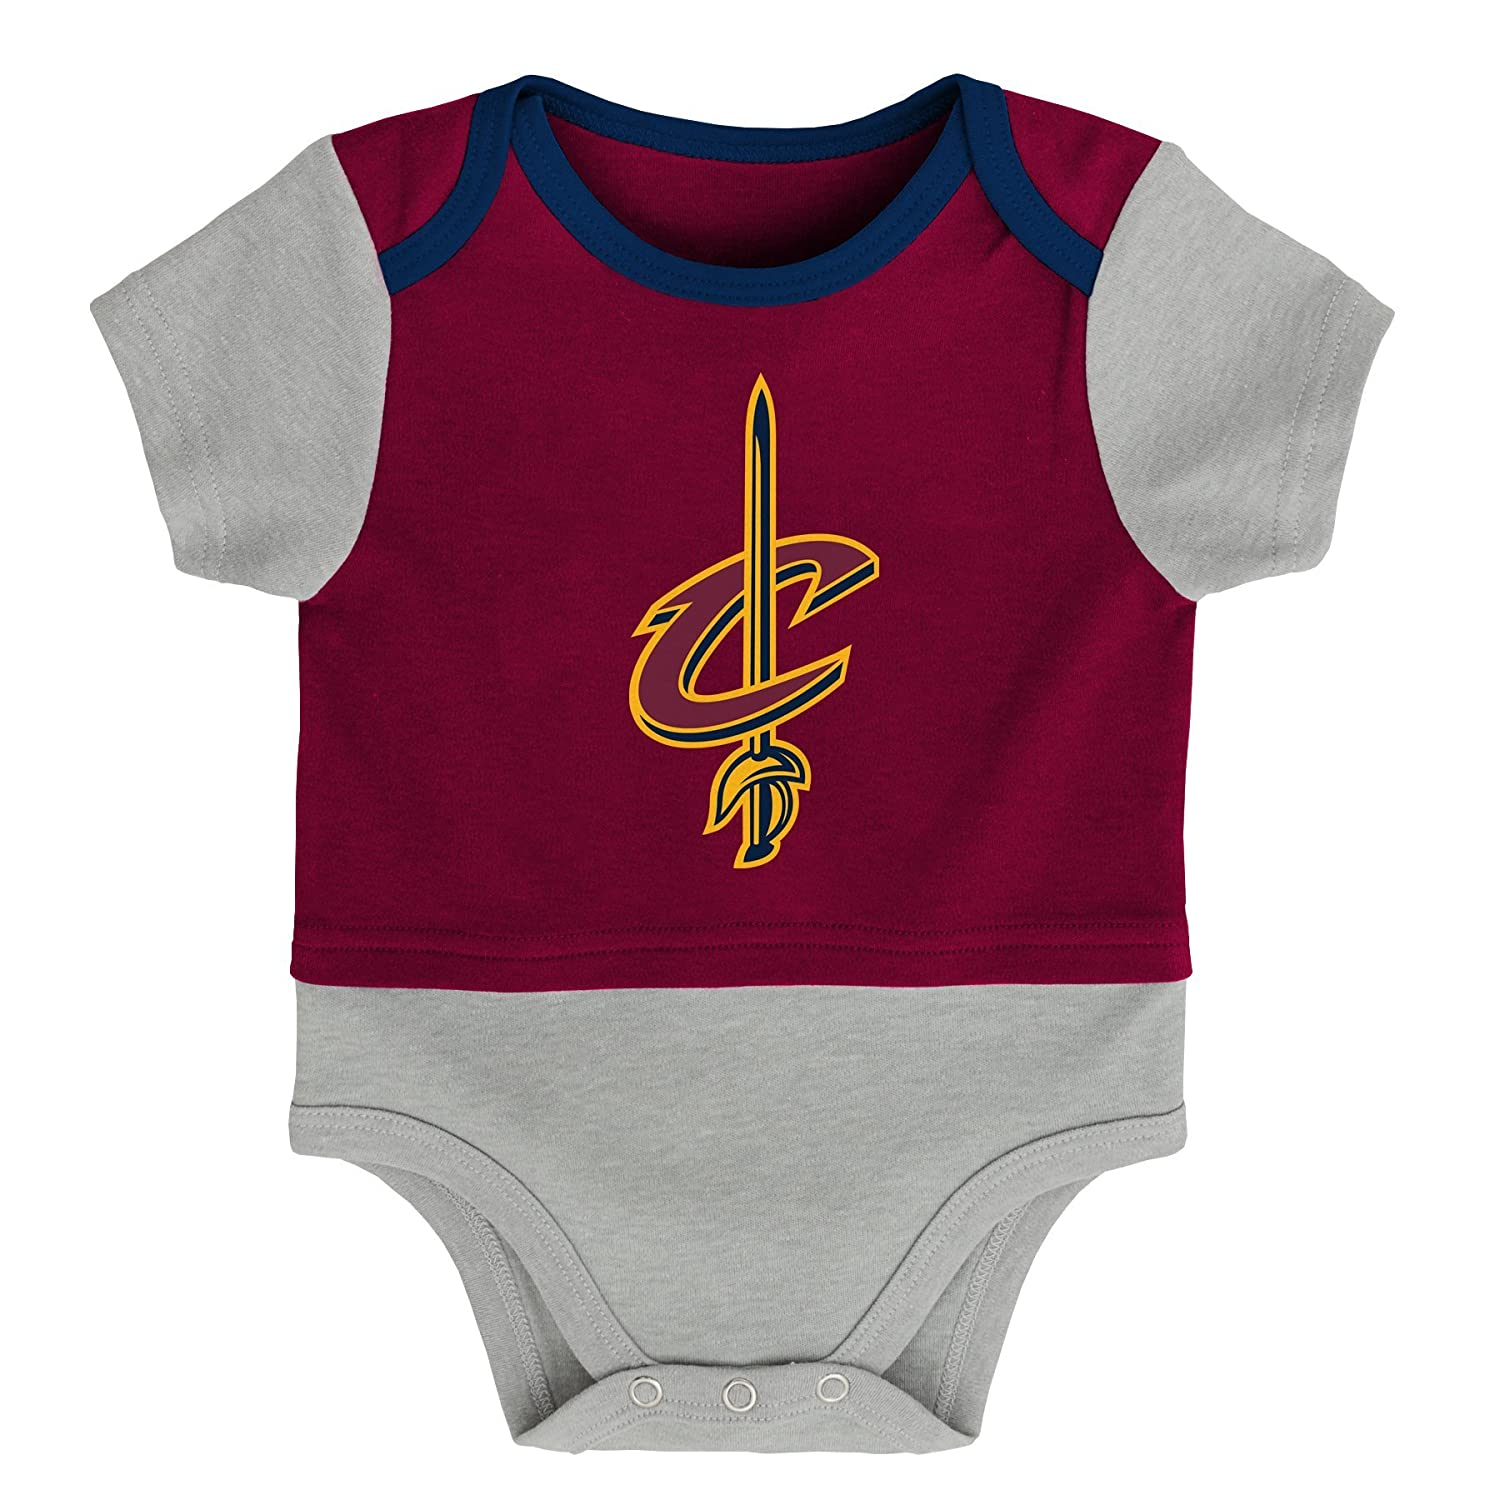 23838e7ecd7 NBA by Outerstuff NBA Newborn   Infant Referee Short Sleeve Bodysuit  9K2N1BAWB NYK B40--